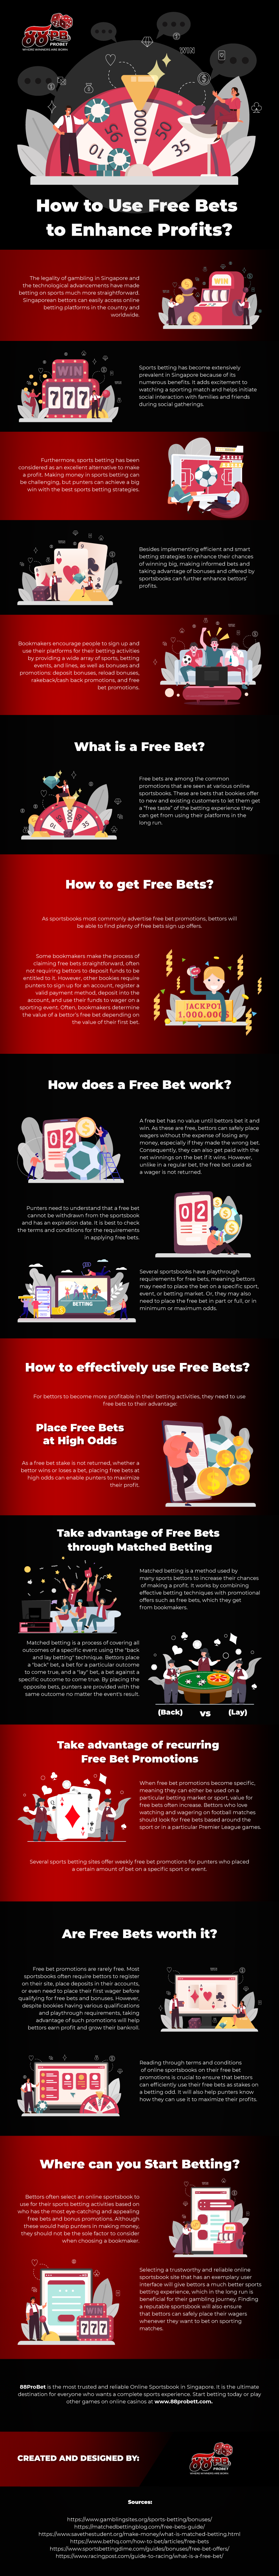 How to Use Free Bets to Enhance Profits